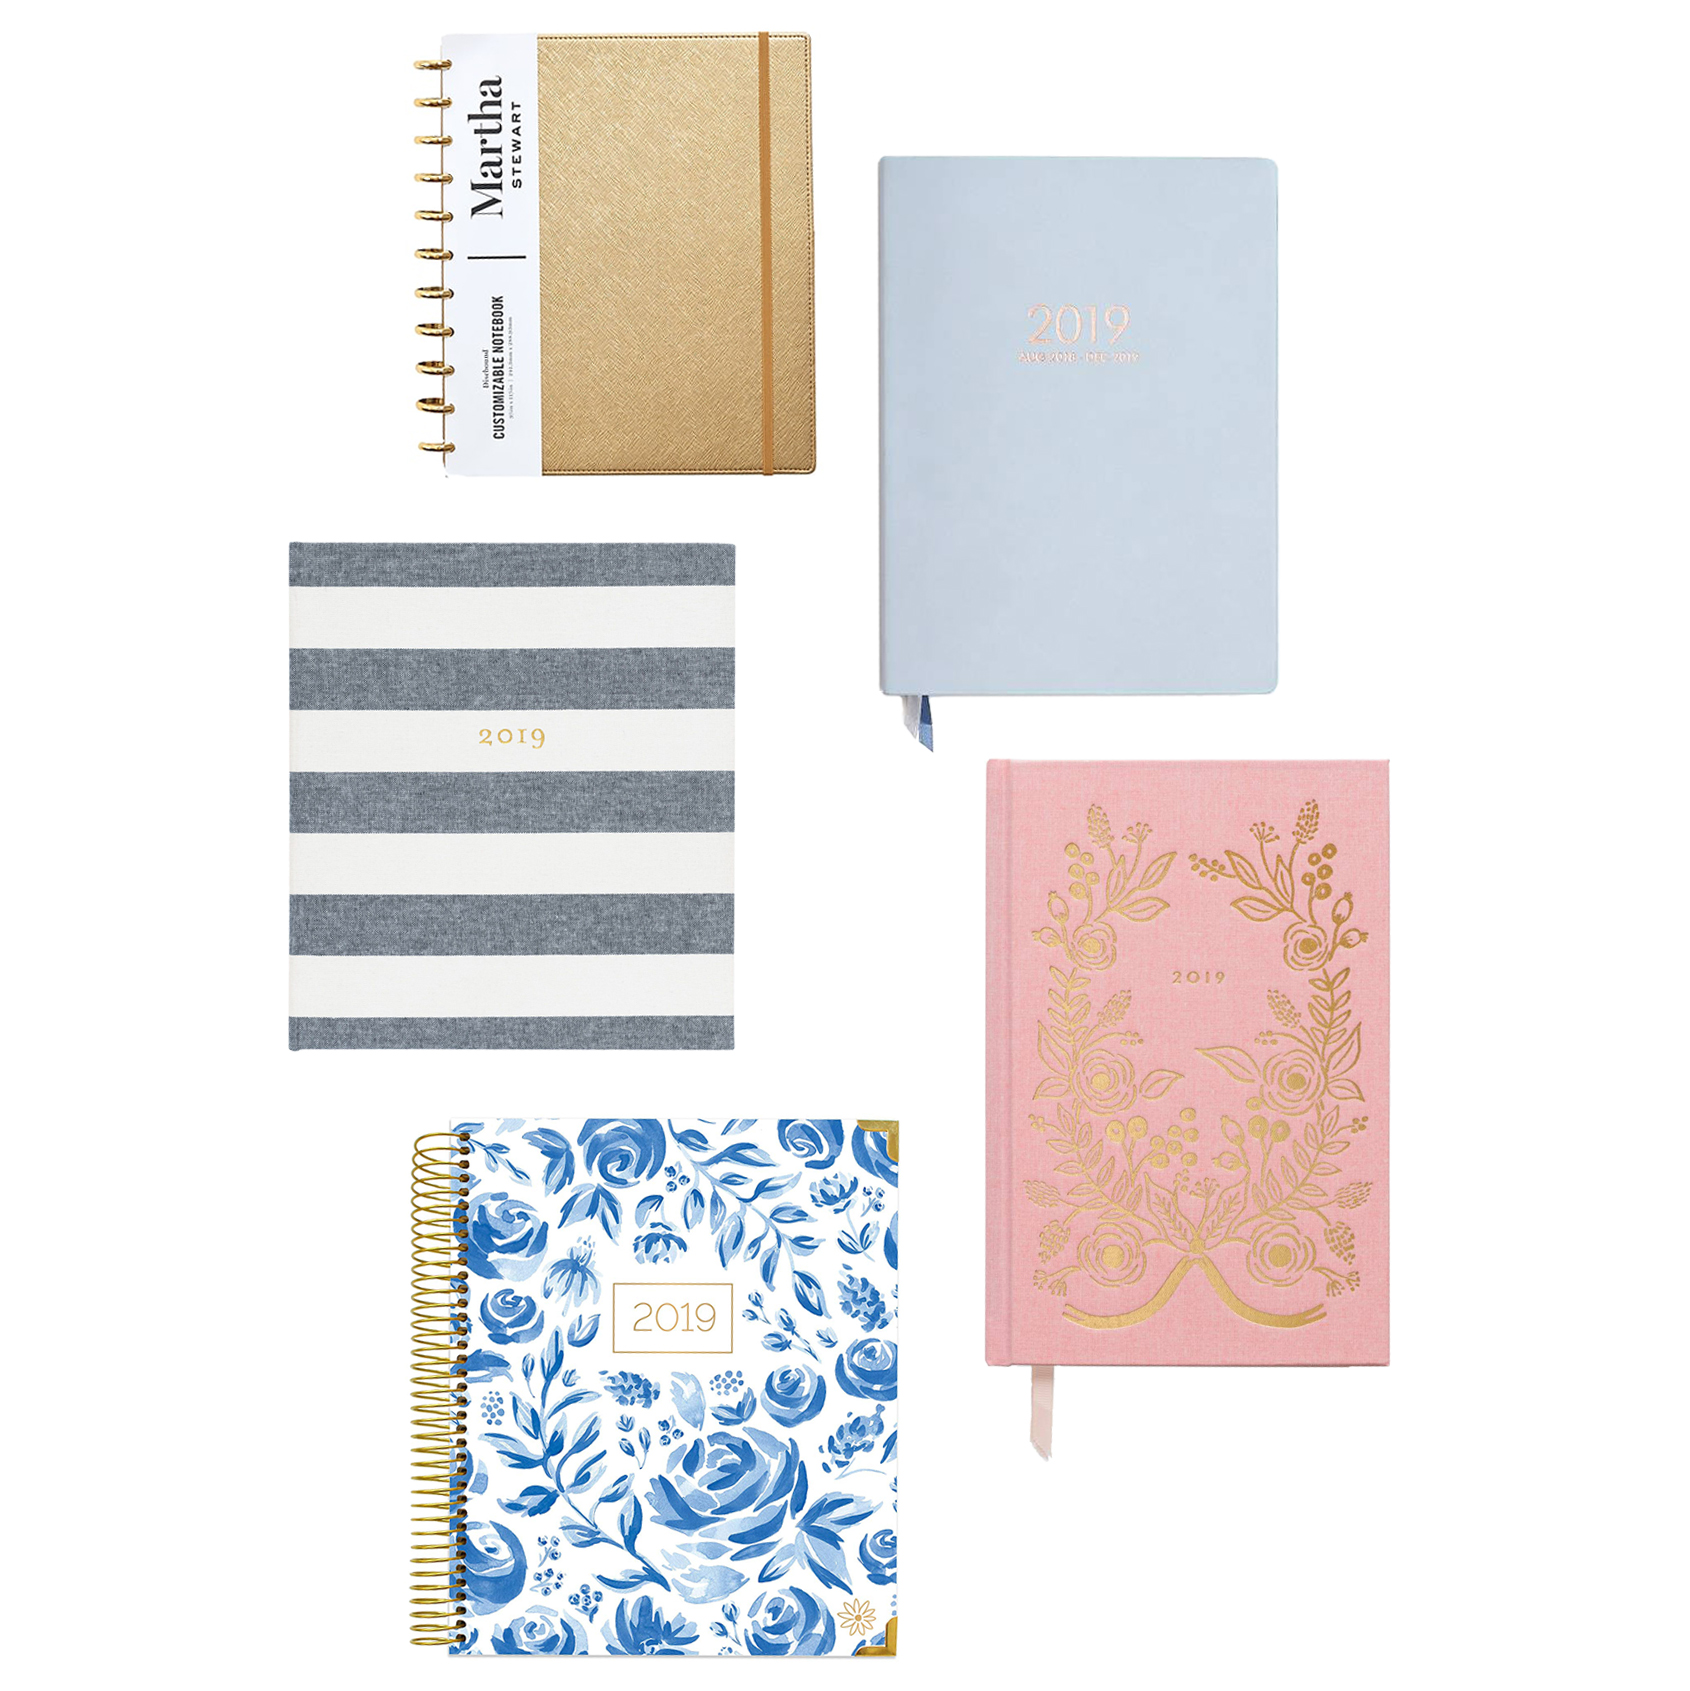 10 Daily Planners to Keep You Better Organized in 2019 | Martha Stewart